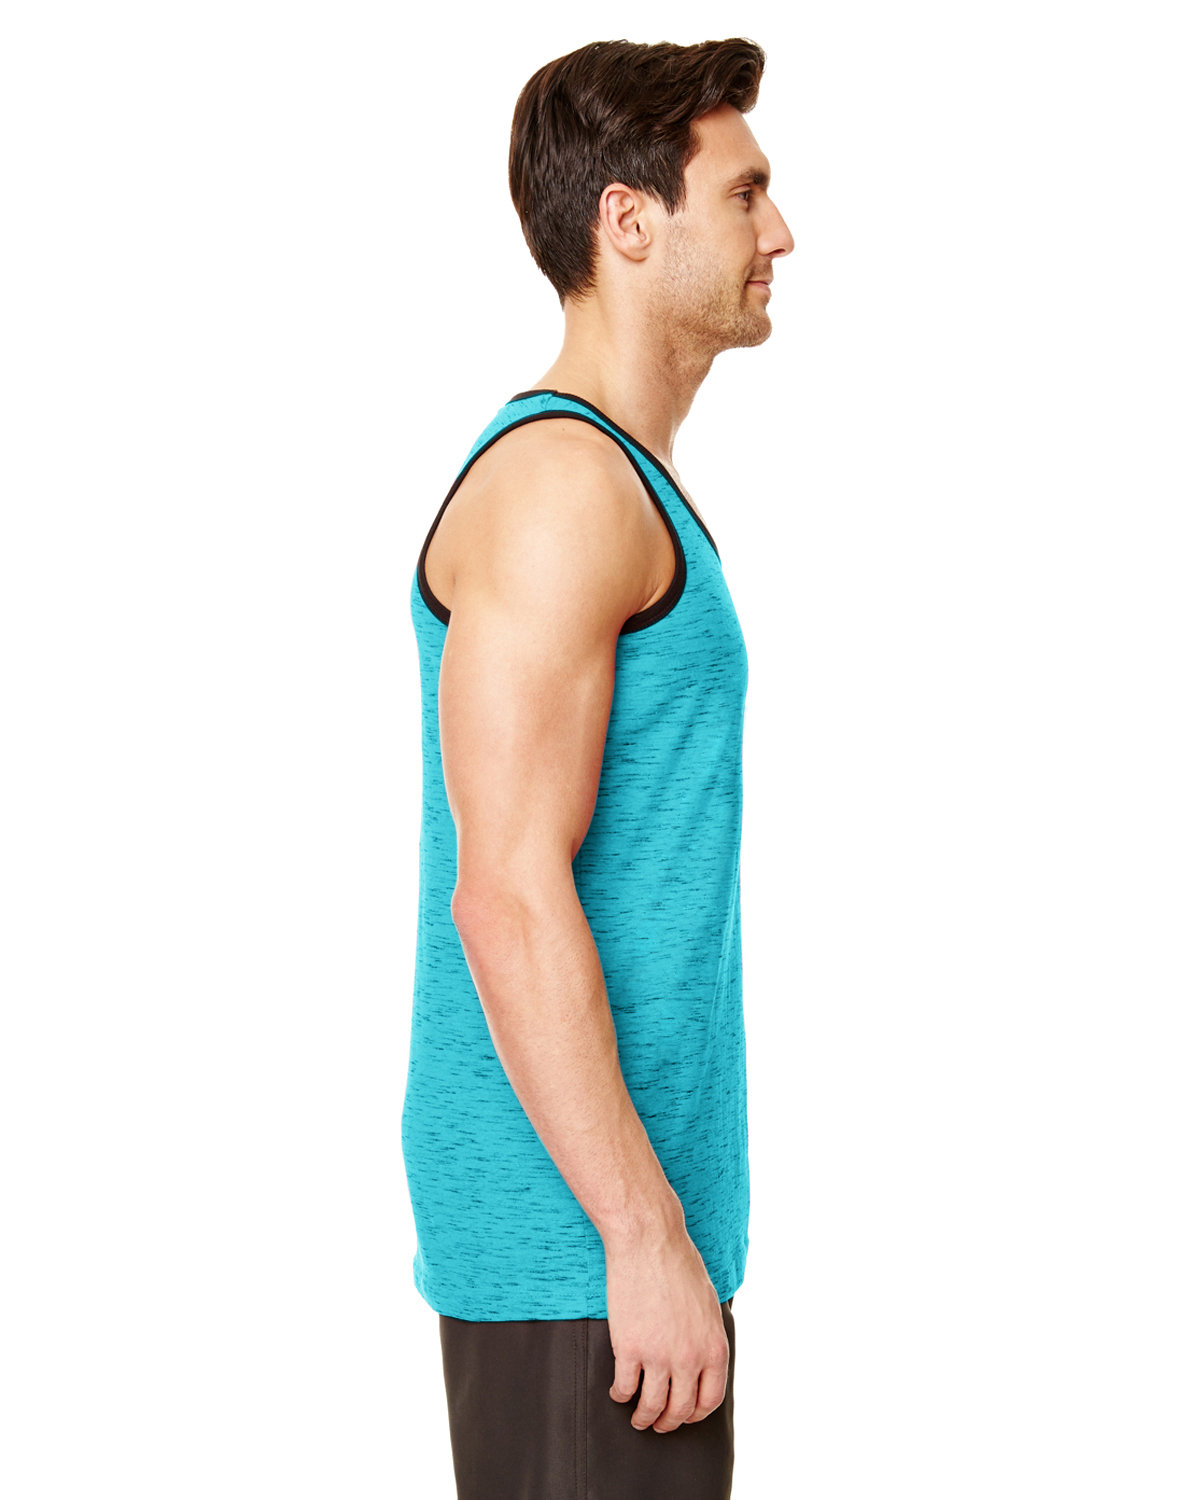 0332615f9c2179 B9102 Burnside Adult Injected Slub Tank Top. Touch to zoom. Color Shown   blue